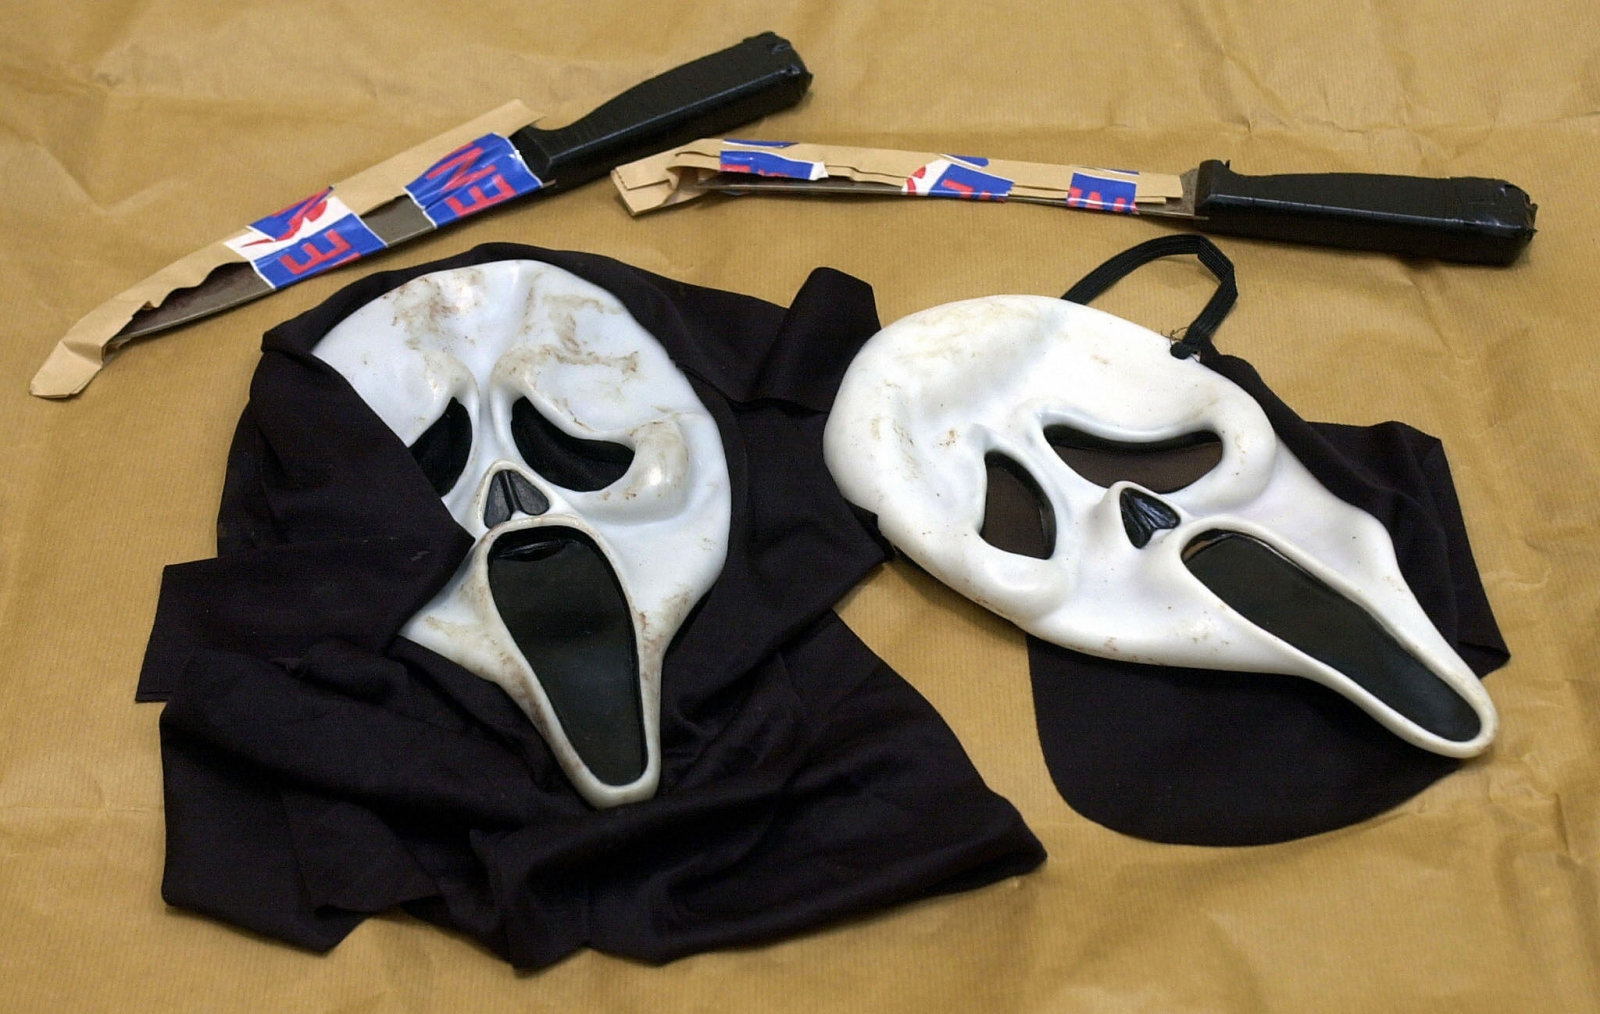 Scream movie masks and knives